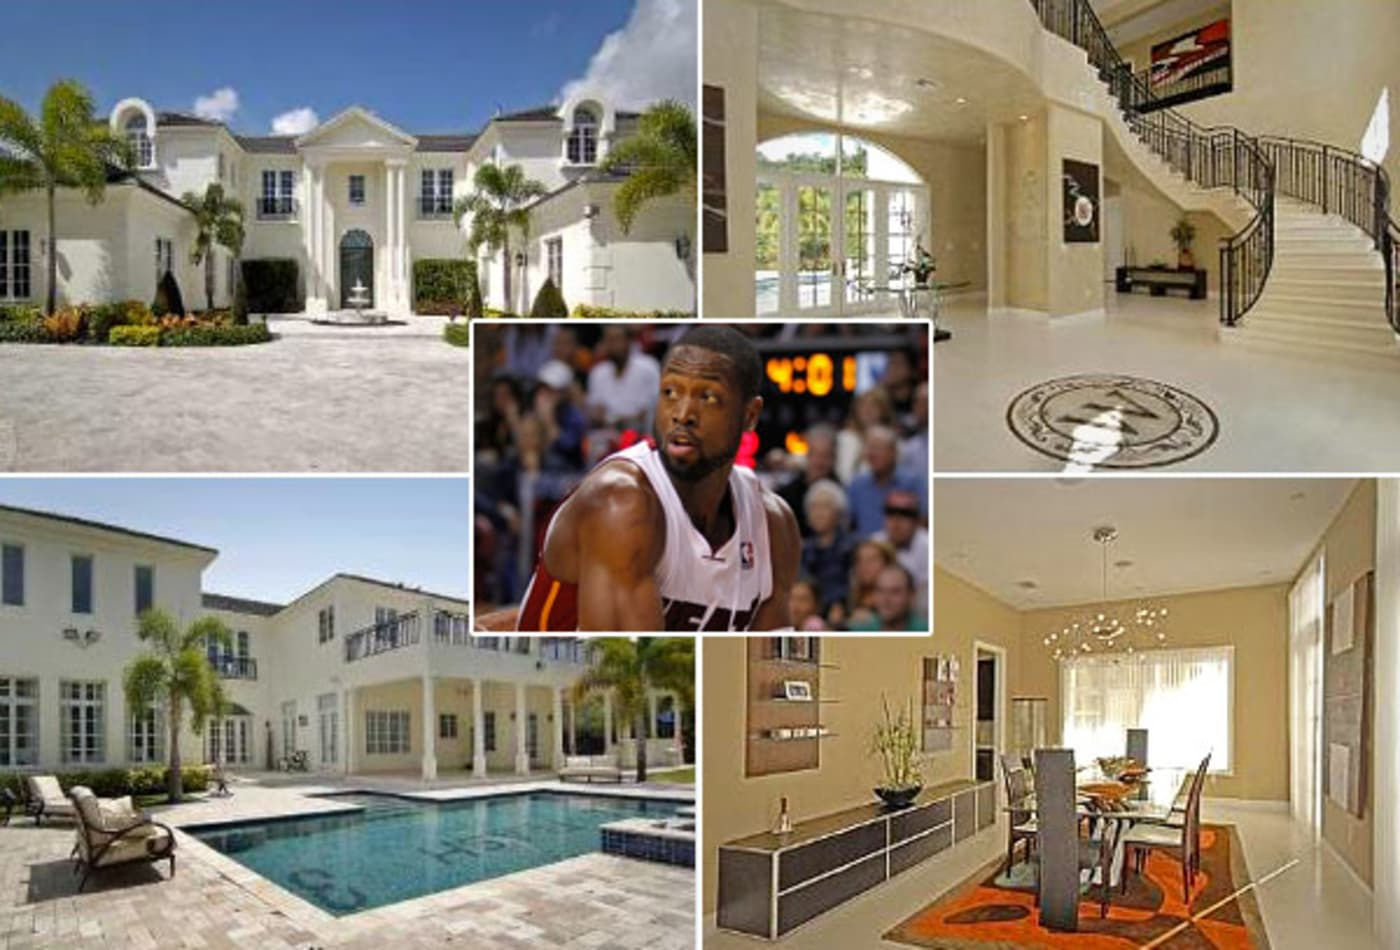 Dwayne-Wade-Homes-of-NBA-Stars-CNBC.jpg